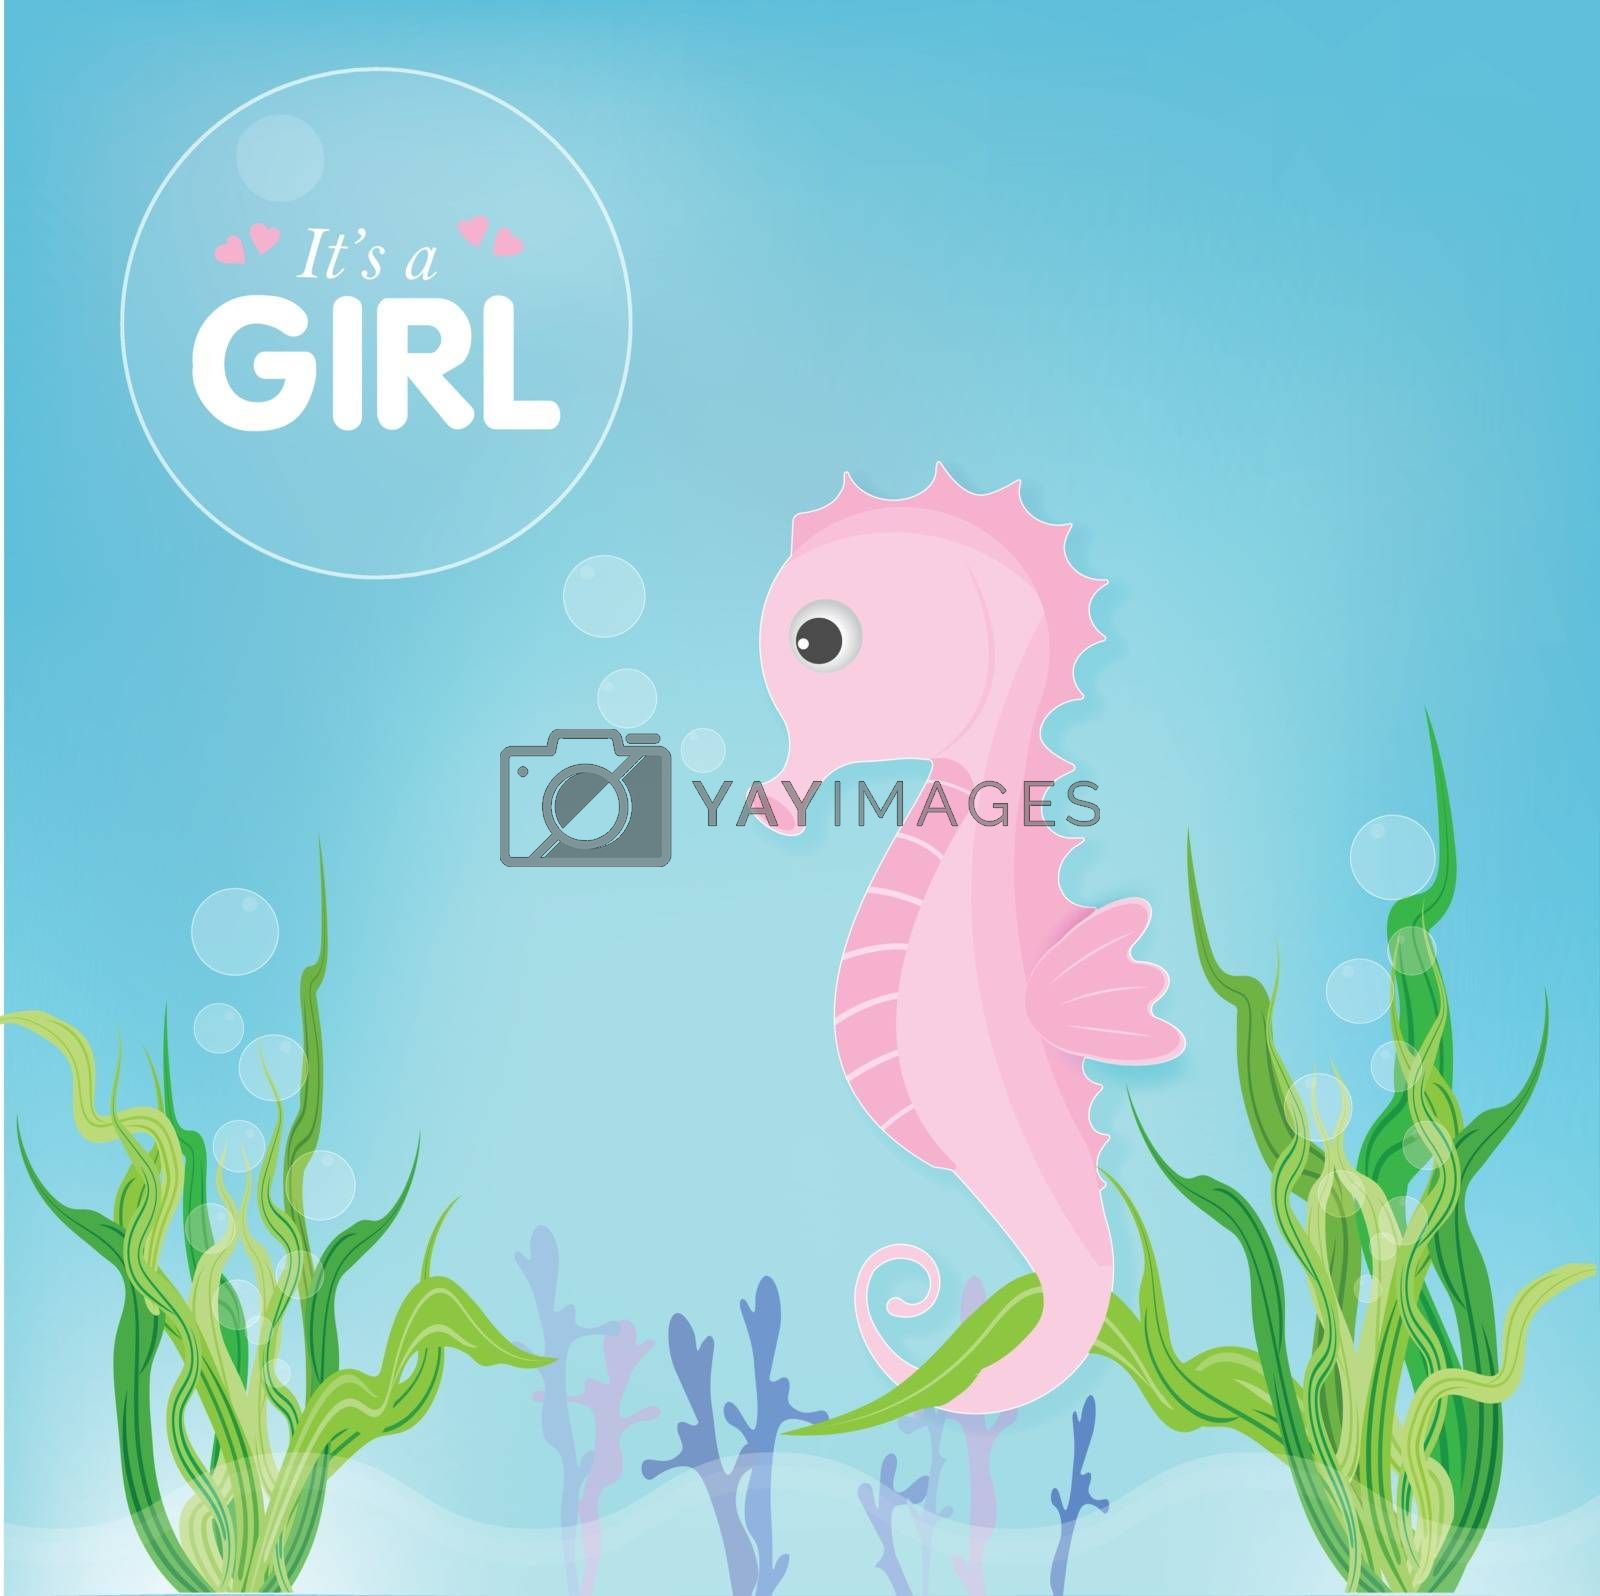 Pink Seahorse and seaweed cute cartoon shower card, greeting card. Paper art marine style illustration